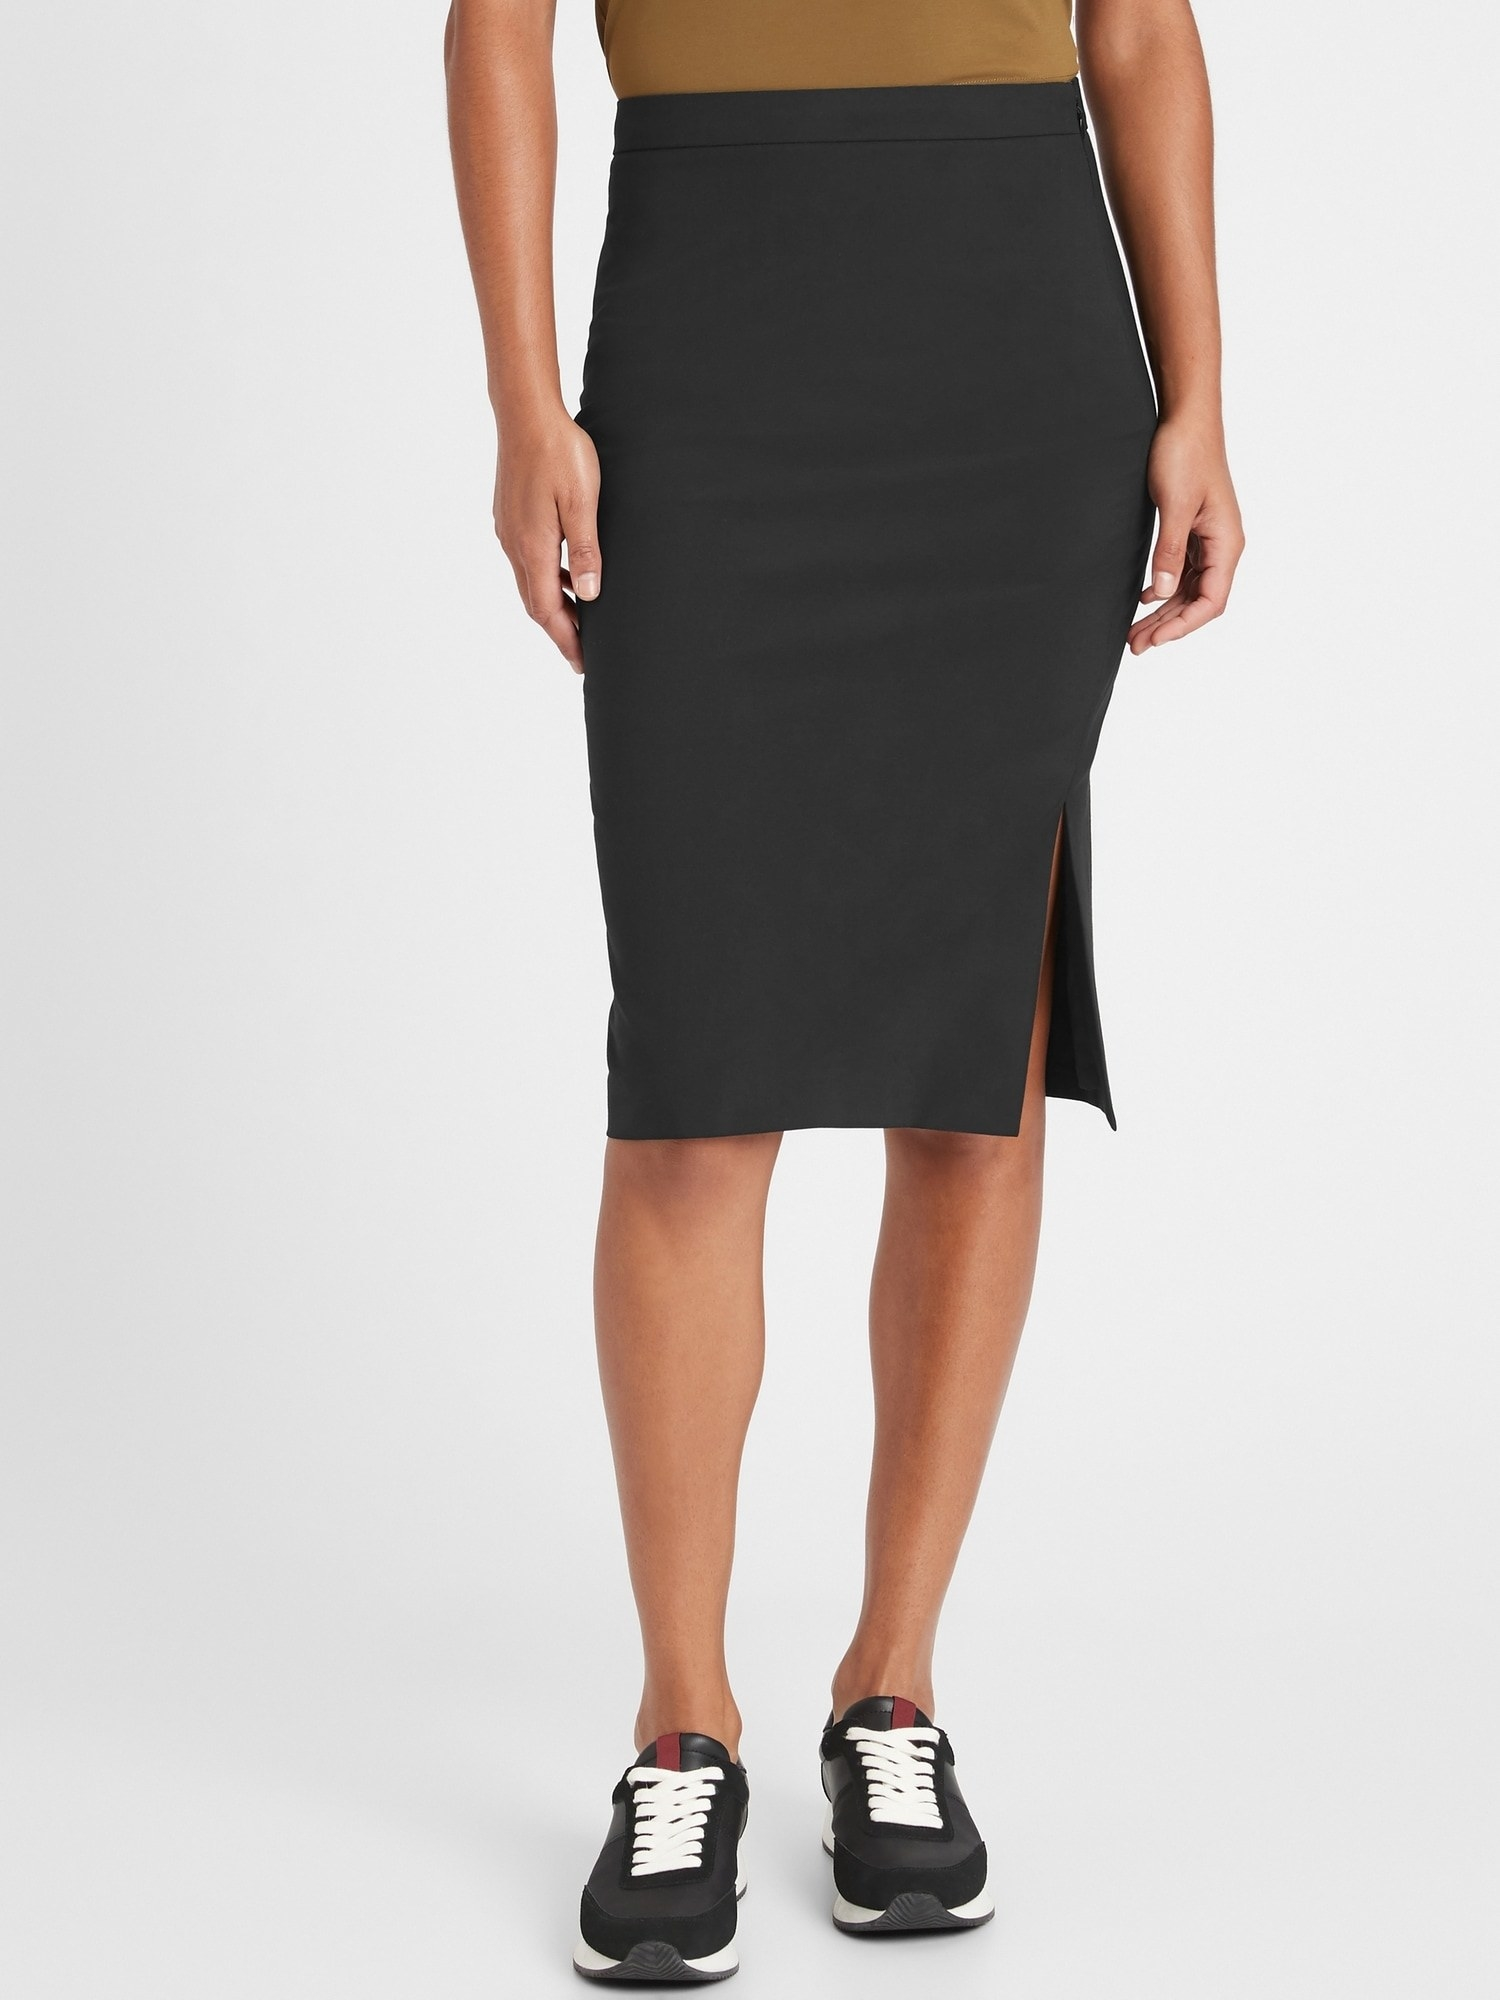 Model wearing the pencil skirt with a side slit in black